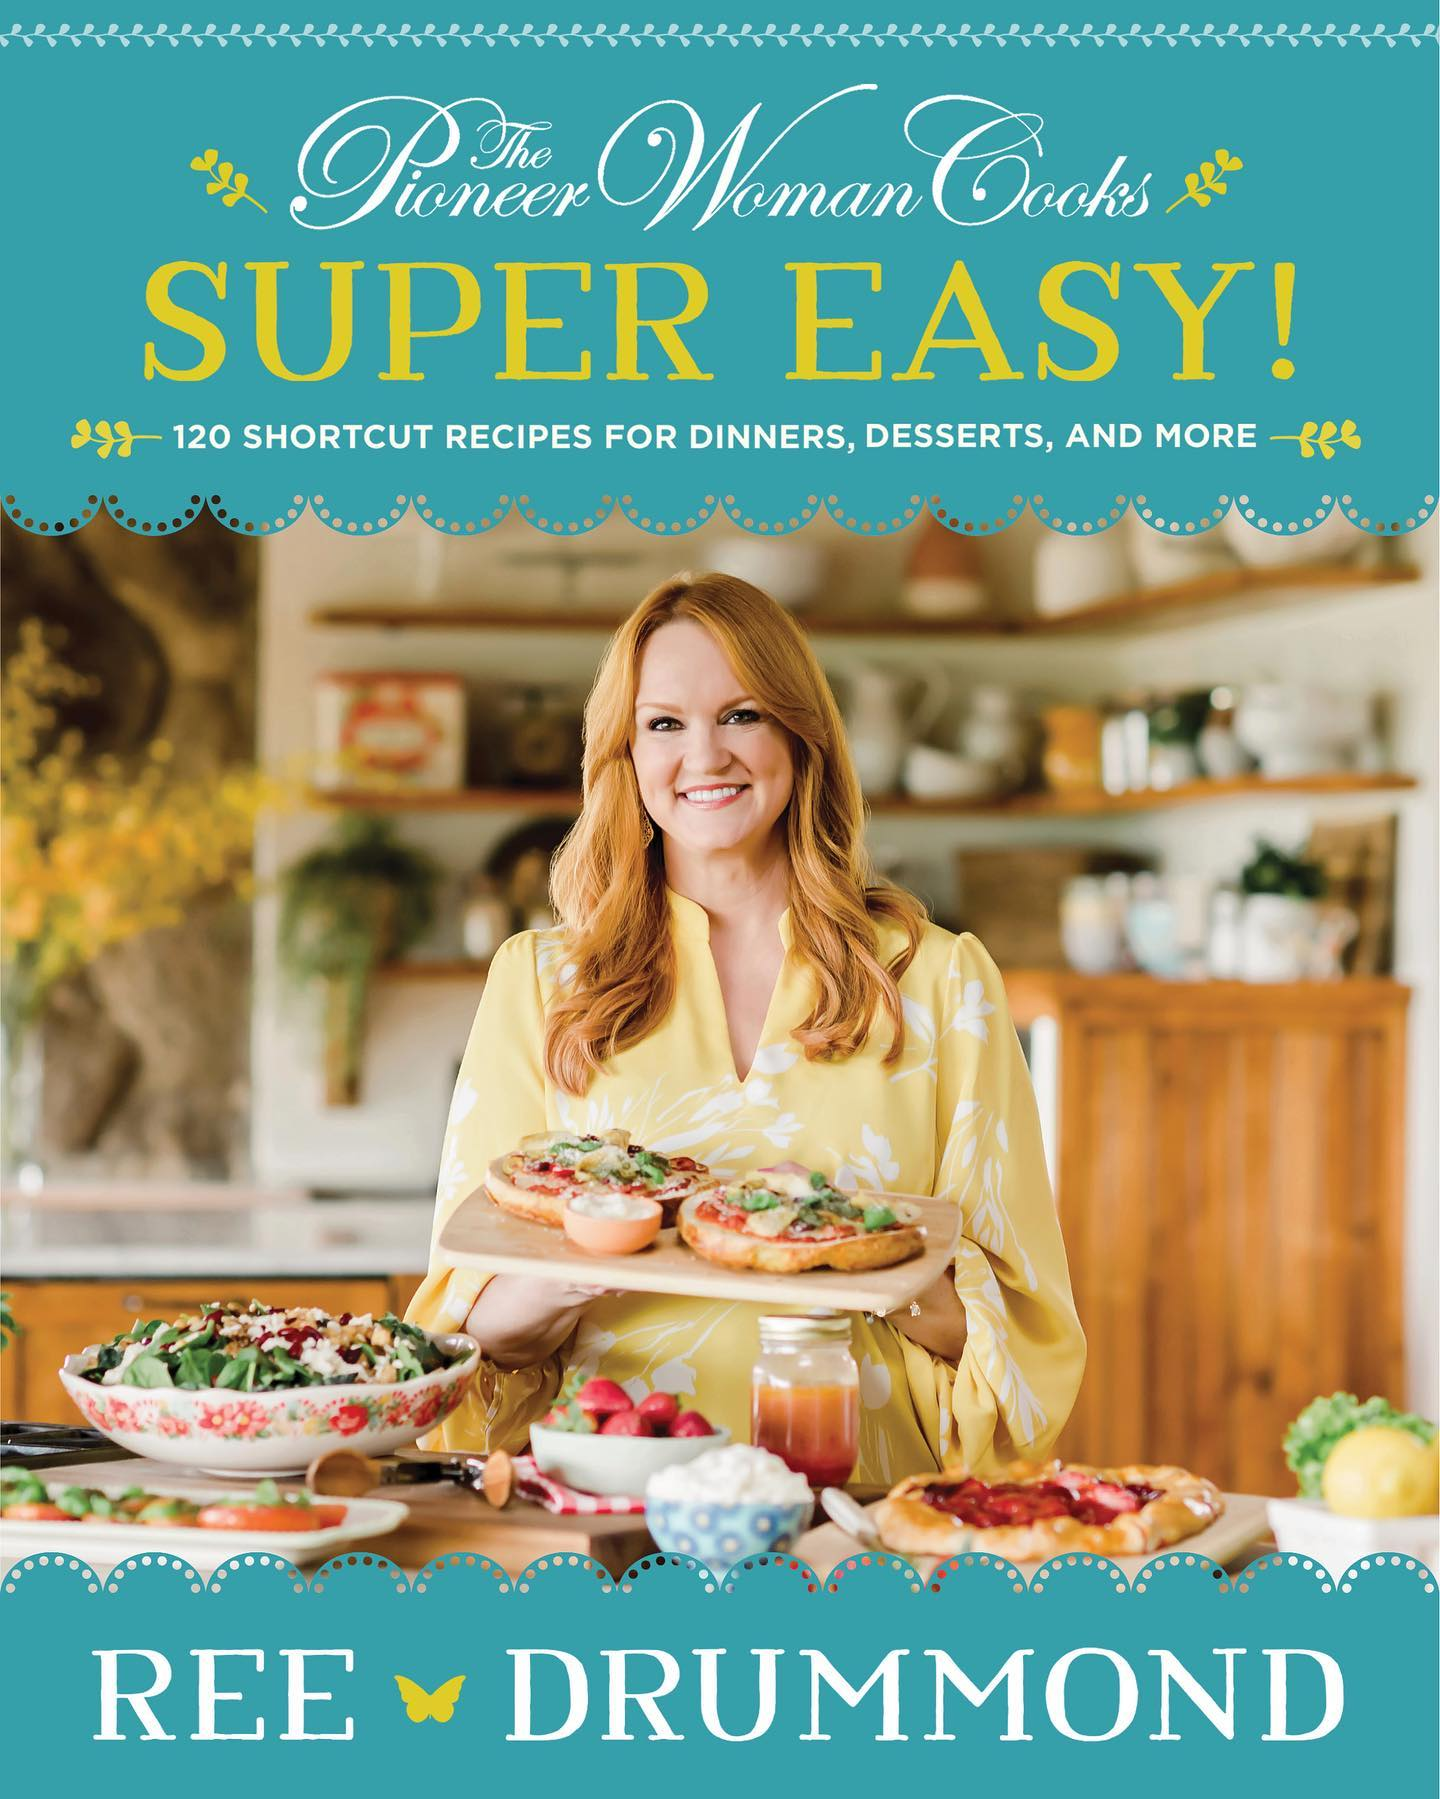 Ree Drummond Shows How The Pioneer Woman Cooks–Super Easy!